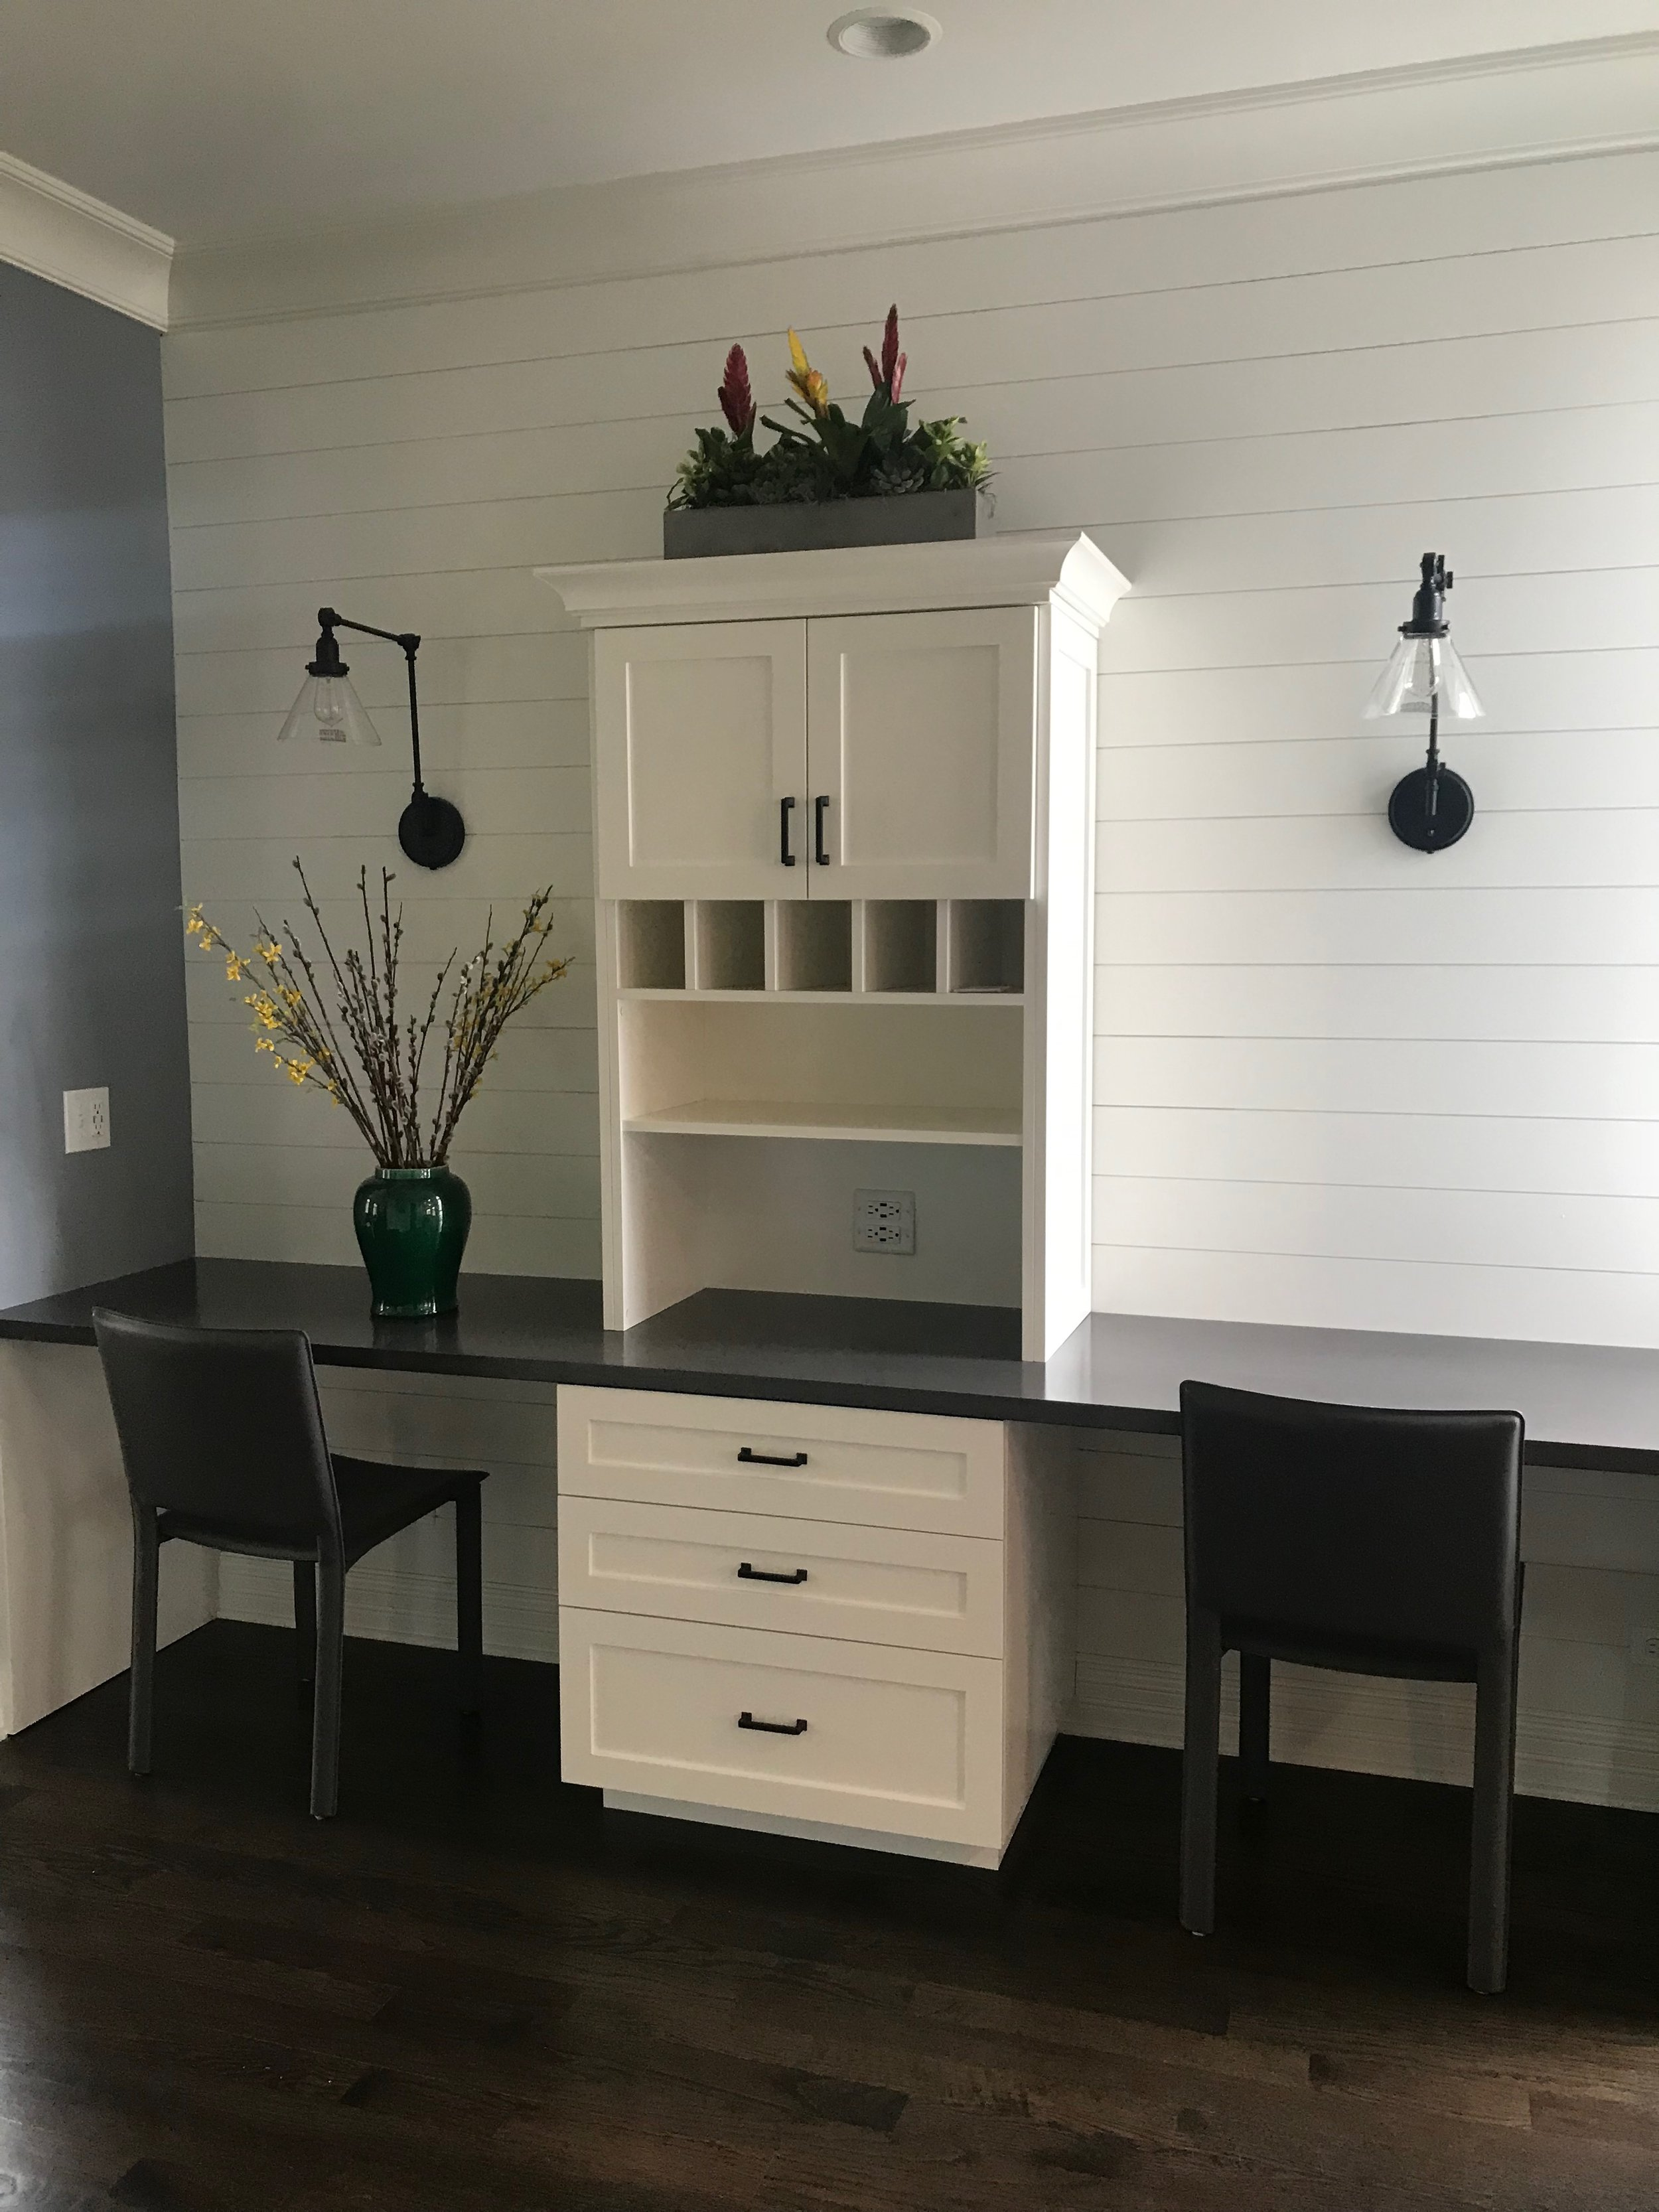 Table for two: a dedicated work space with custom cabinetry and built-in electrical for charging all of the electronic devices in the top drawer. Out of sight and organized in one place.